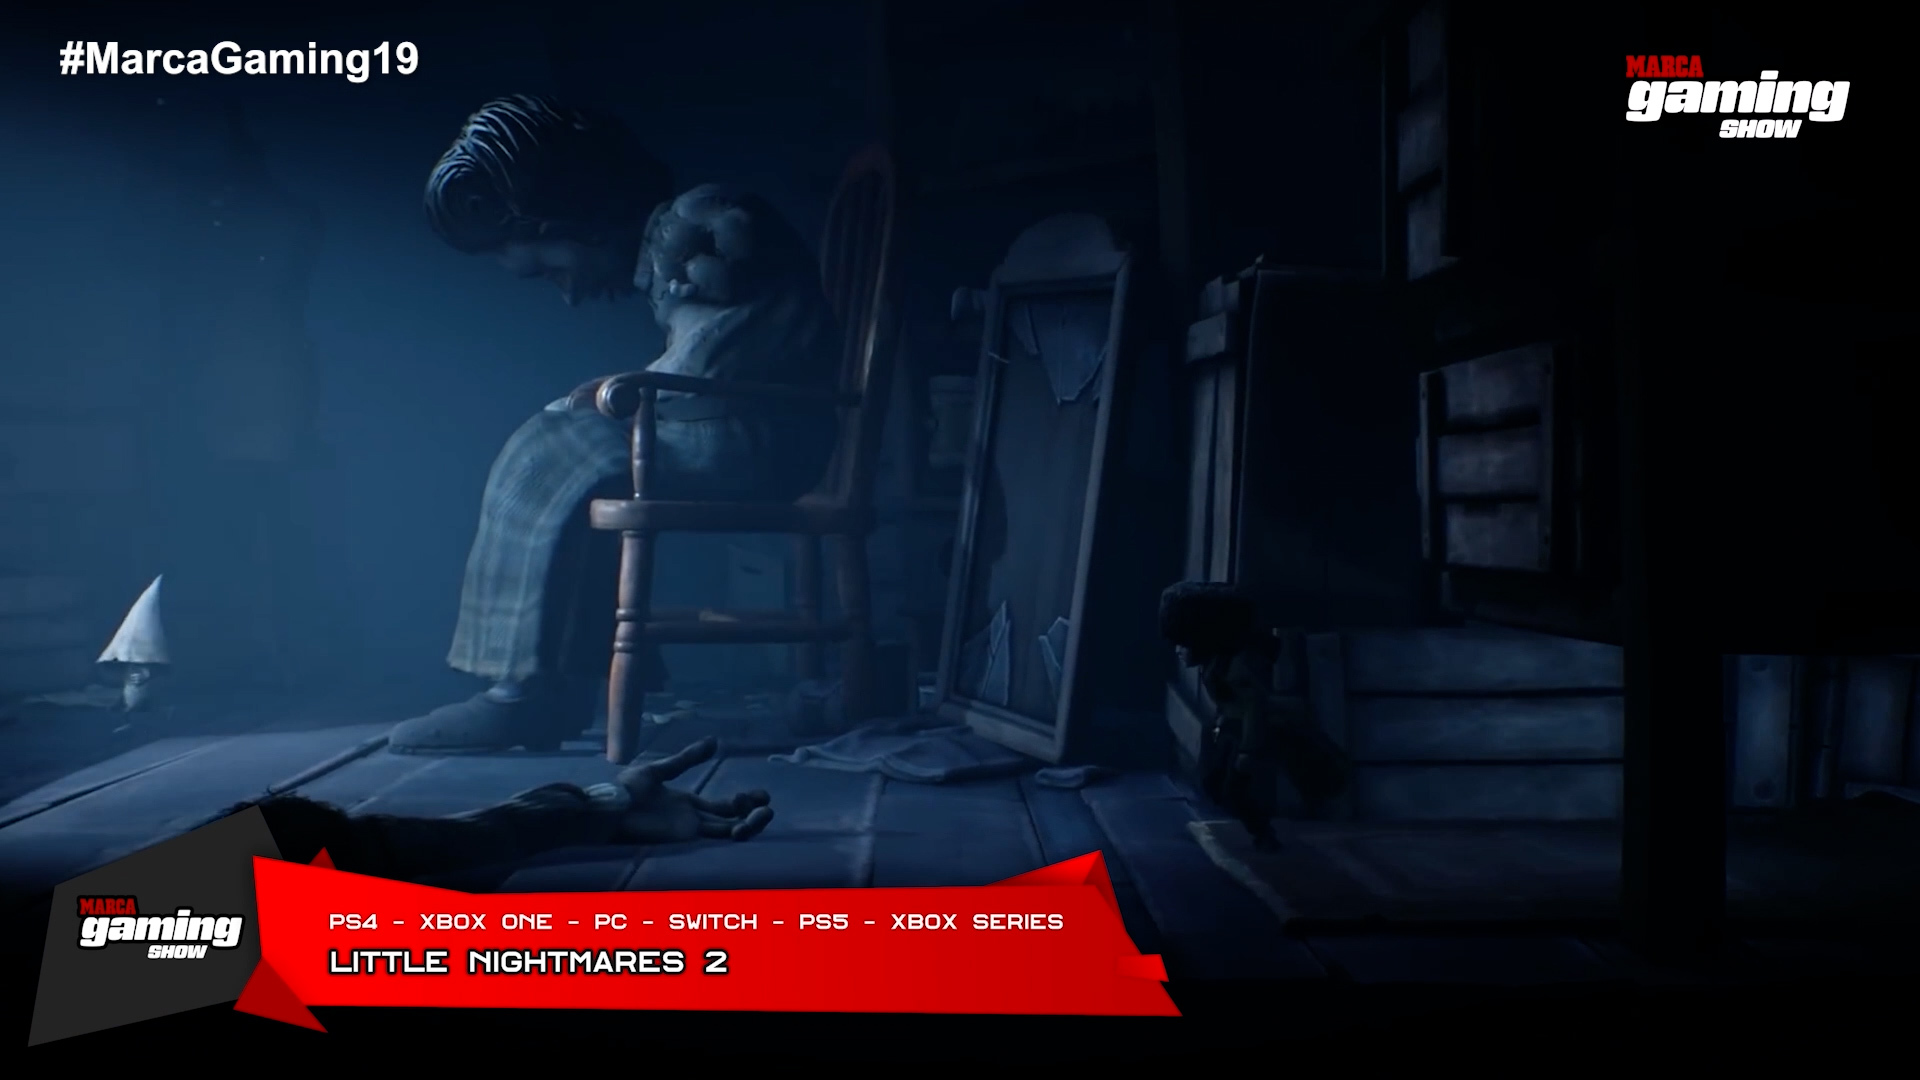 Little Nightmares 2 (PC - PS4 - PS5 - XBOX ONE - XBOX SERIES - SWITCH)